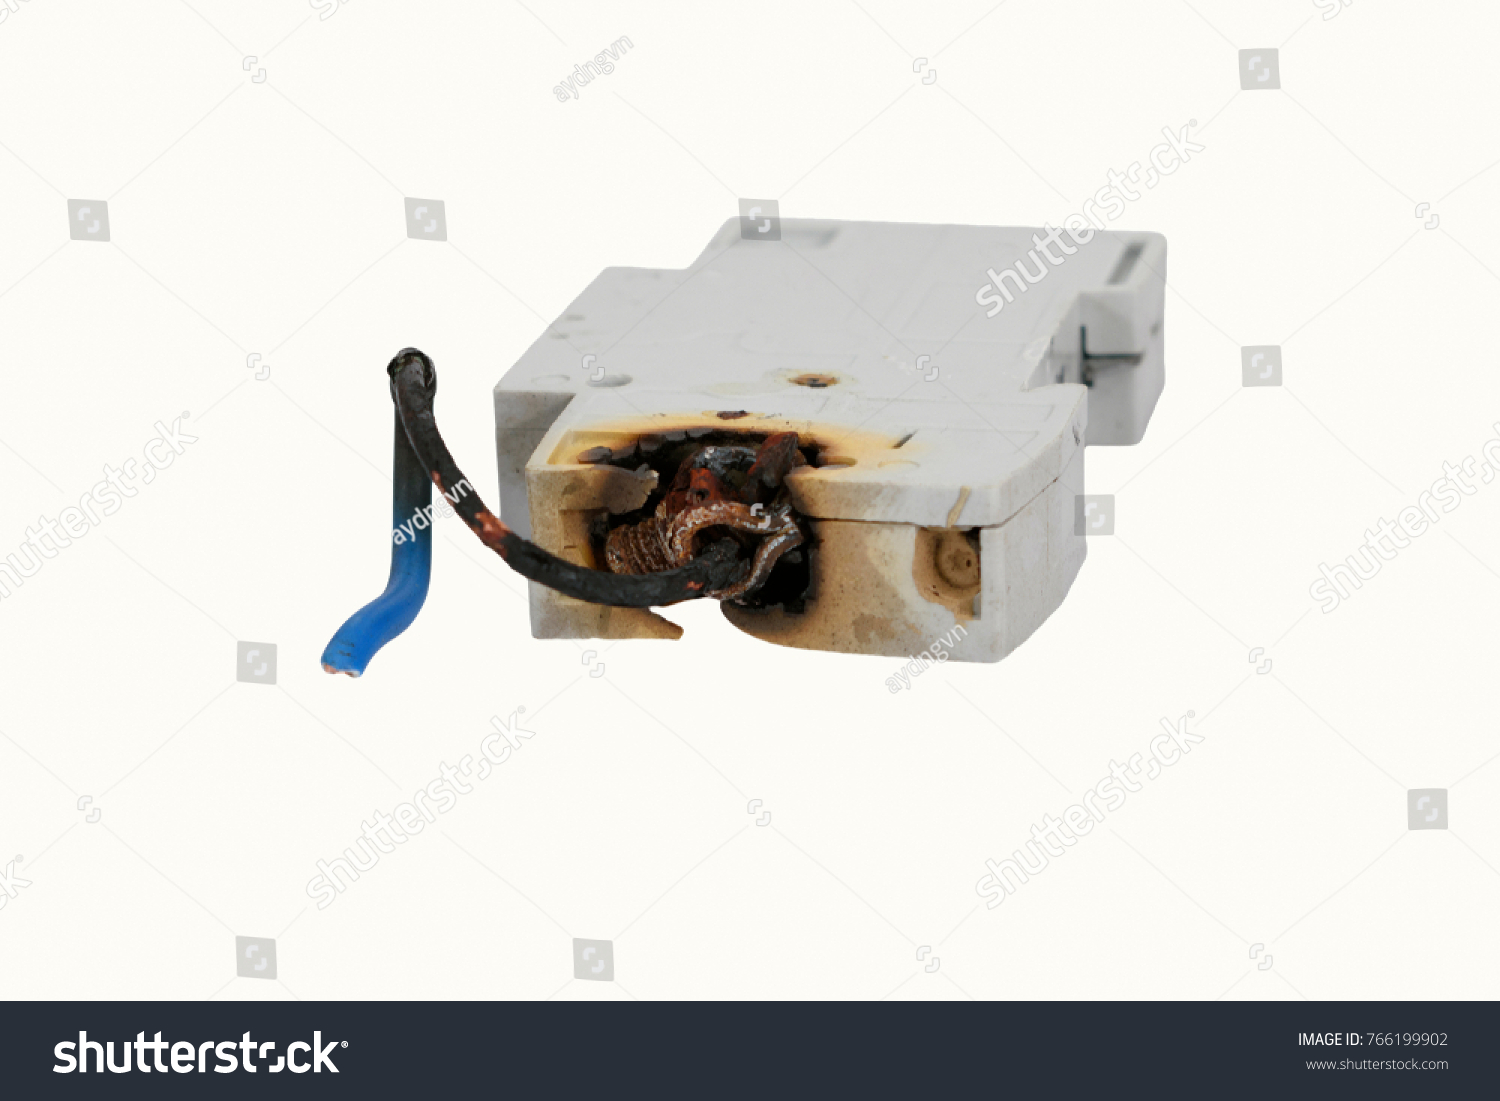 Burnt Breaker Fuse Box Wiring Library Circuit Burned Electrical On White Background The Cable